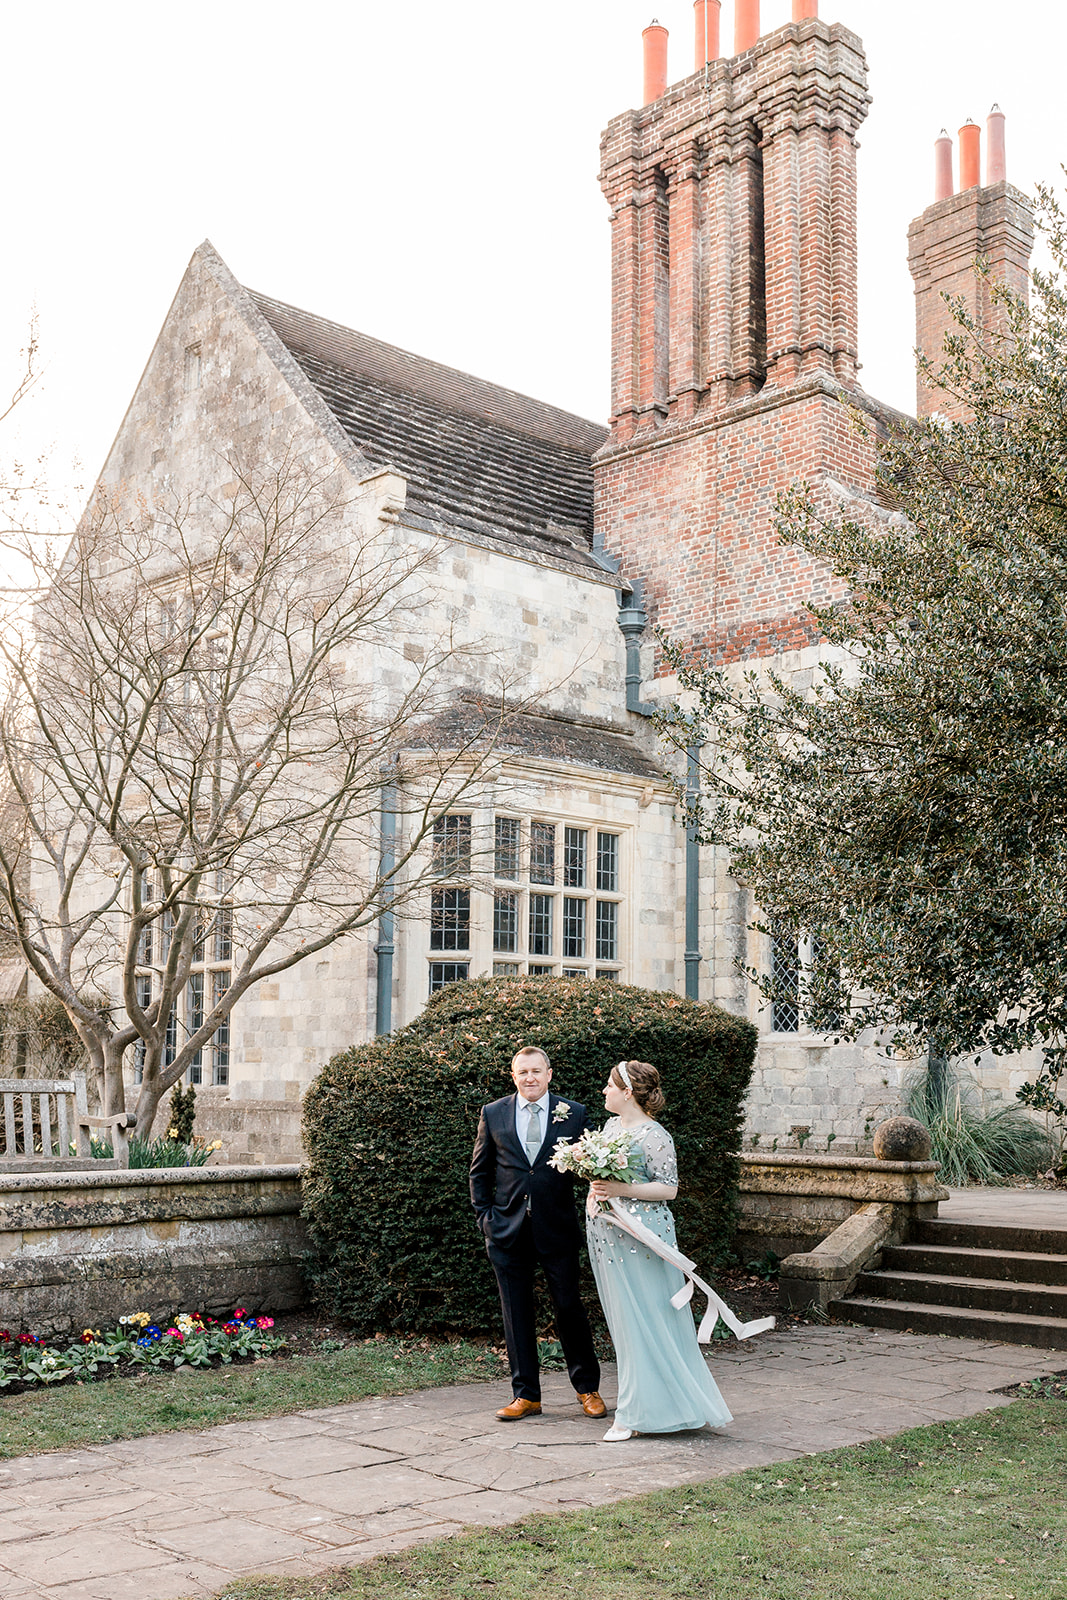 Southover Grange Wedding - Kelsie Scully Photography